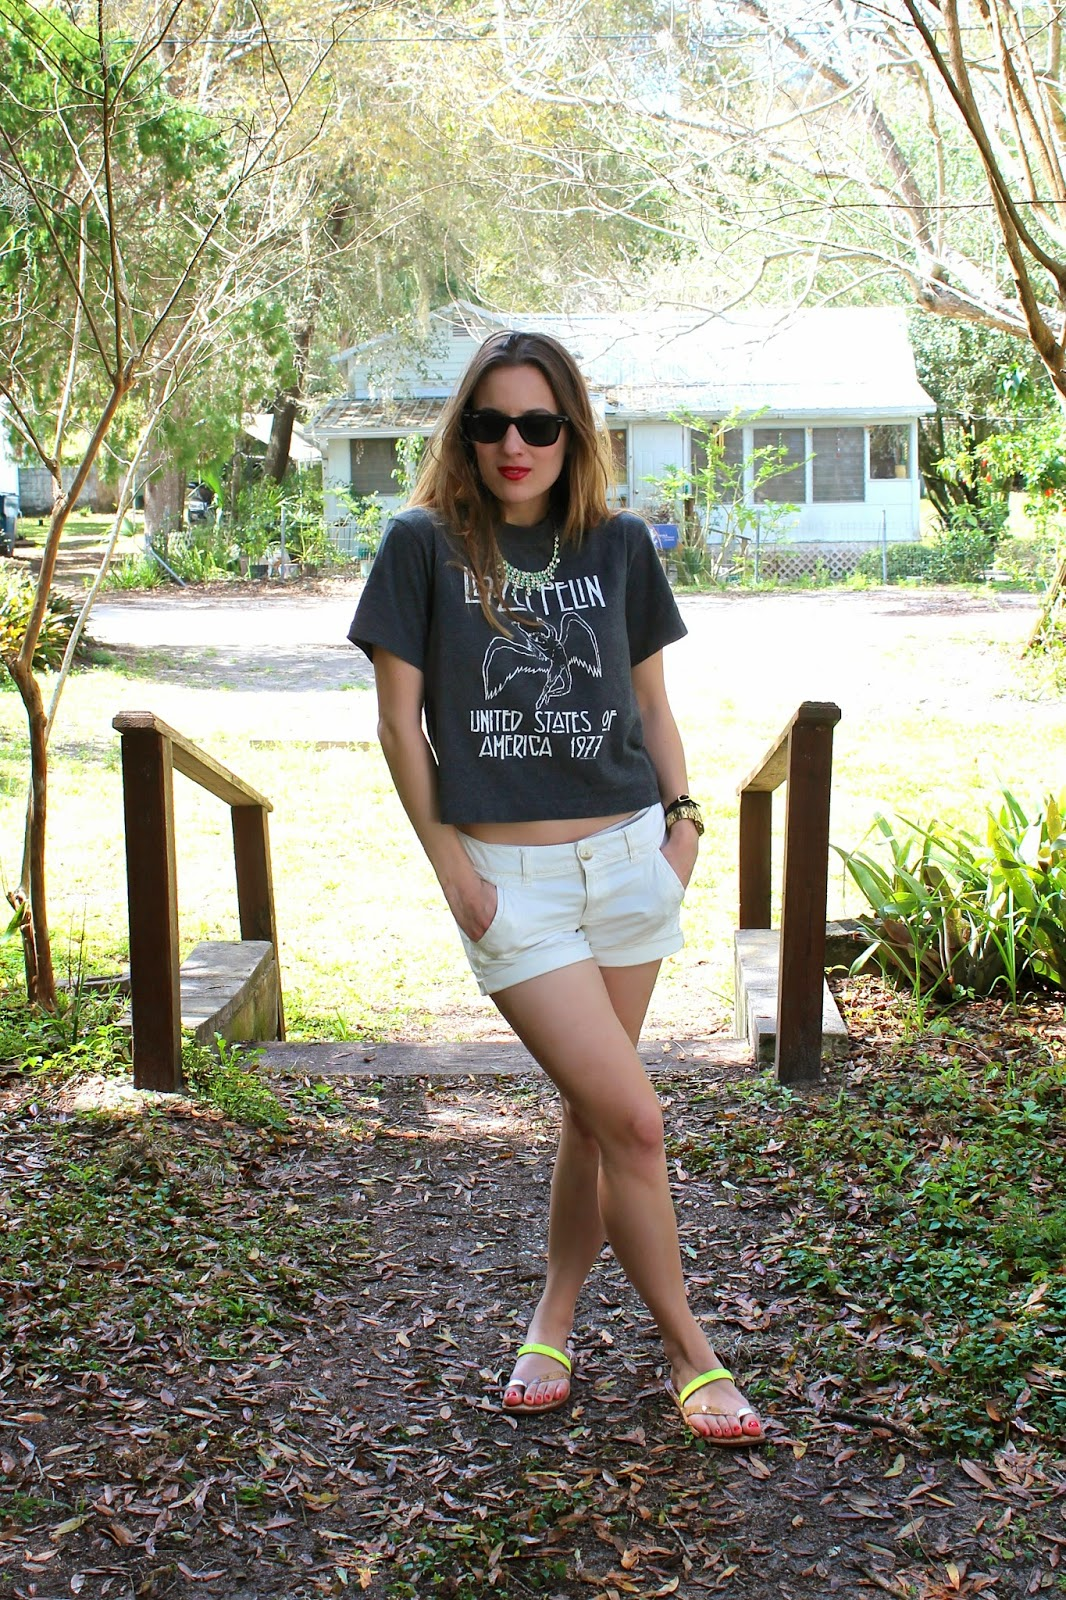 Cassadaga, travel, edgy, Led Zeppelin, graphic tee, ootd